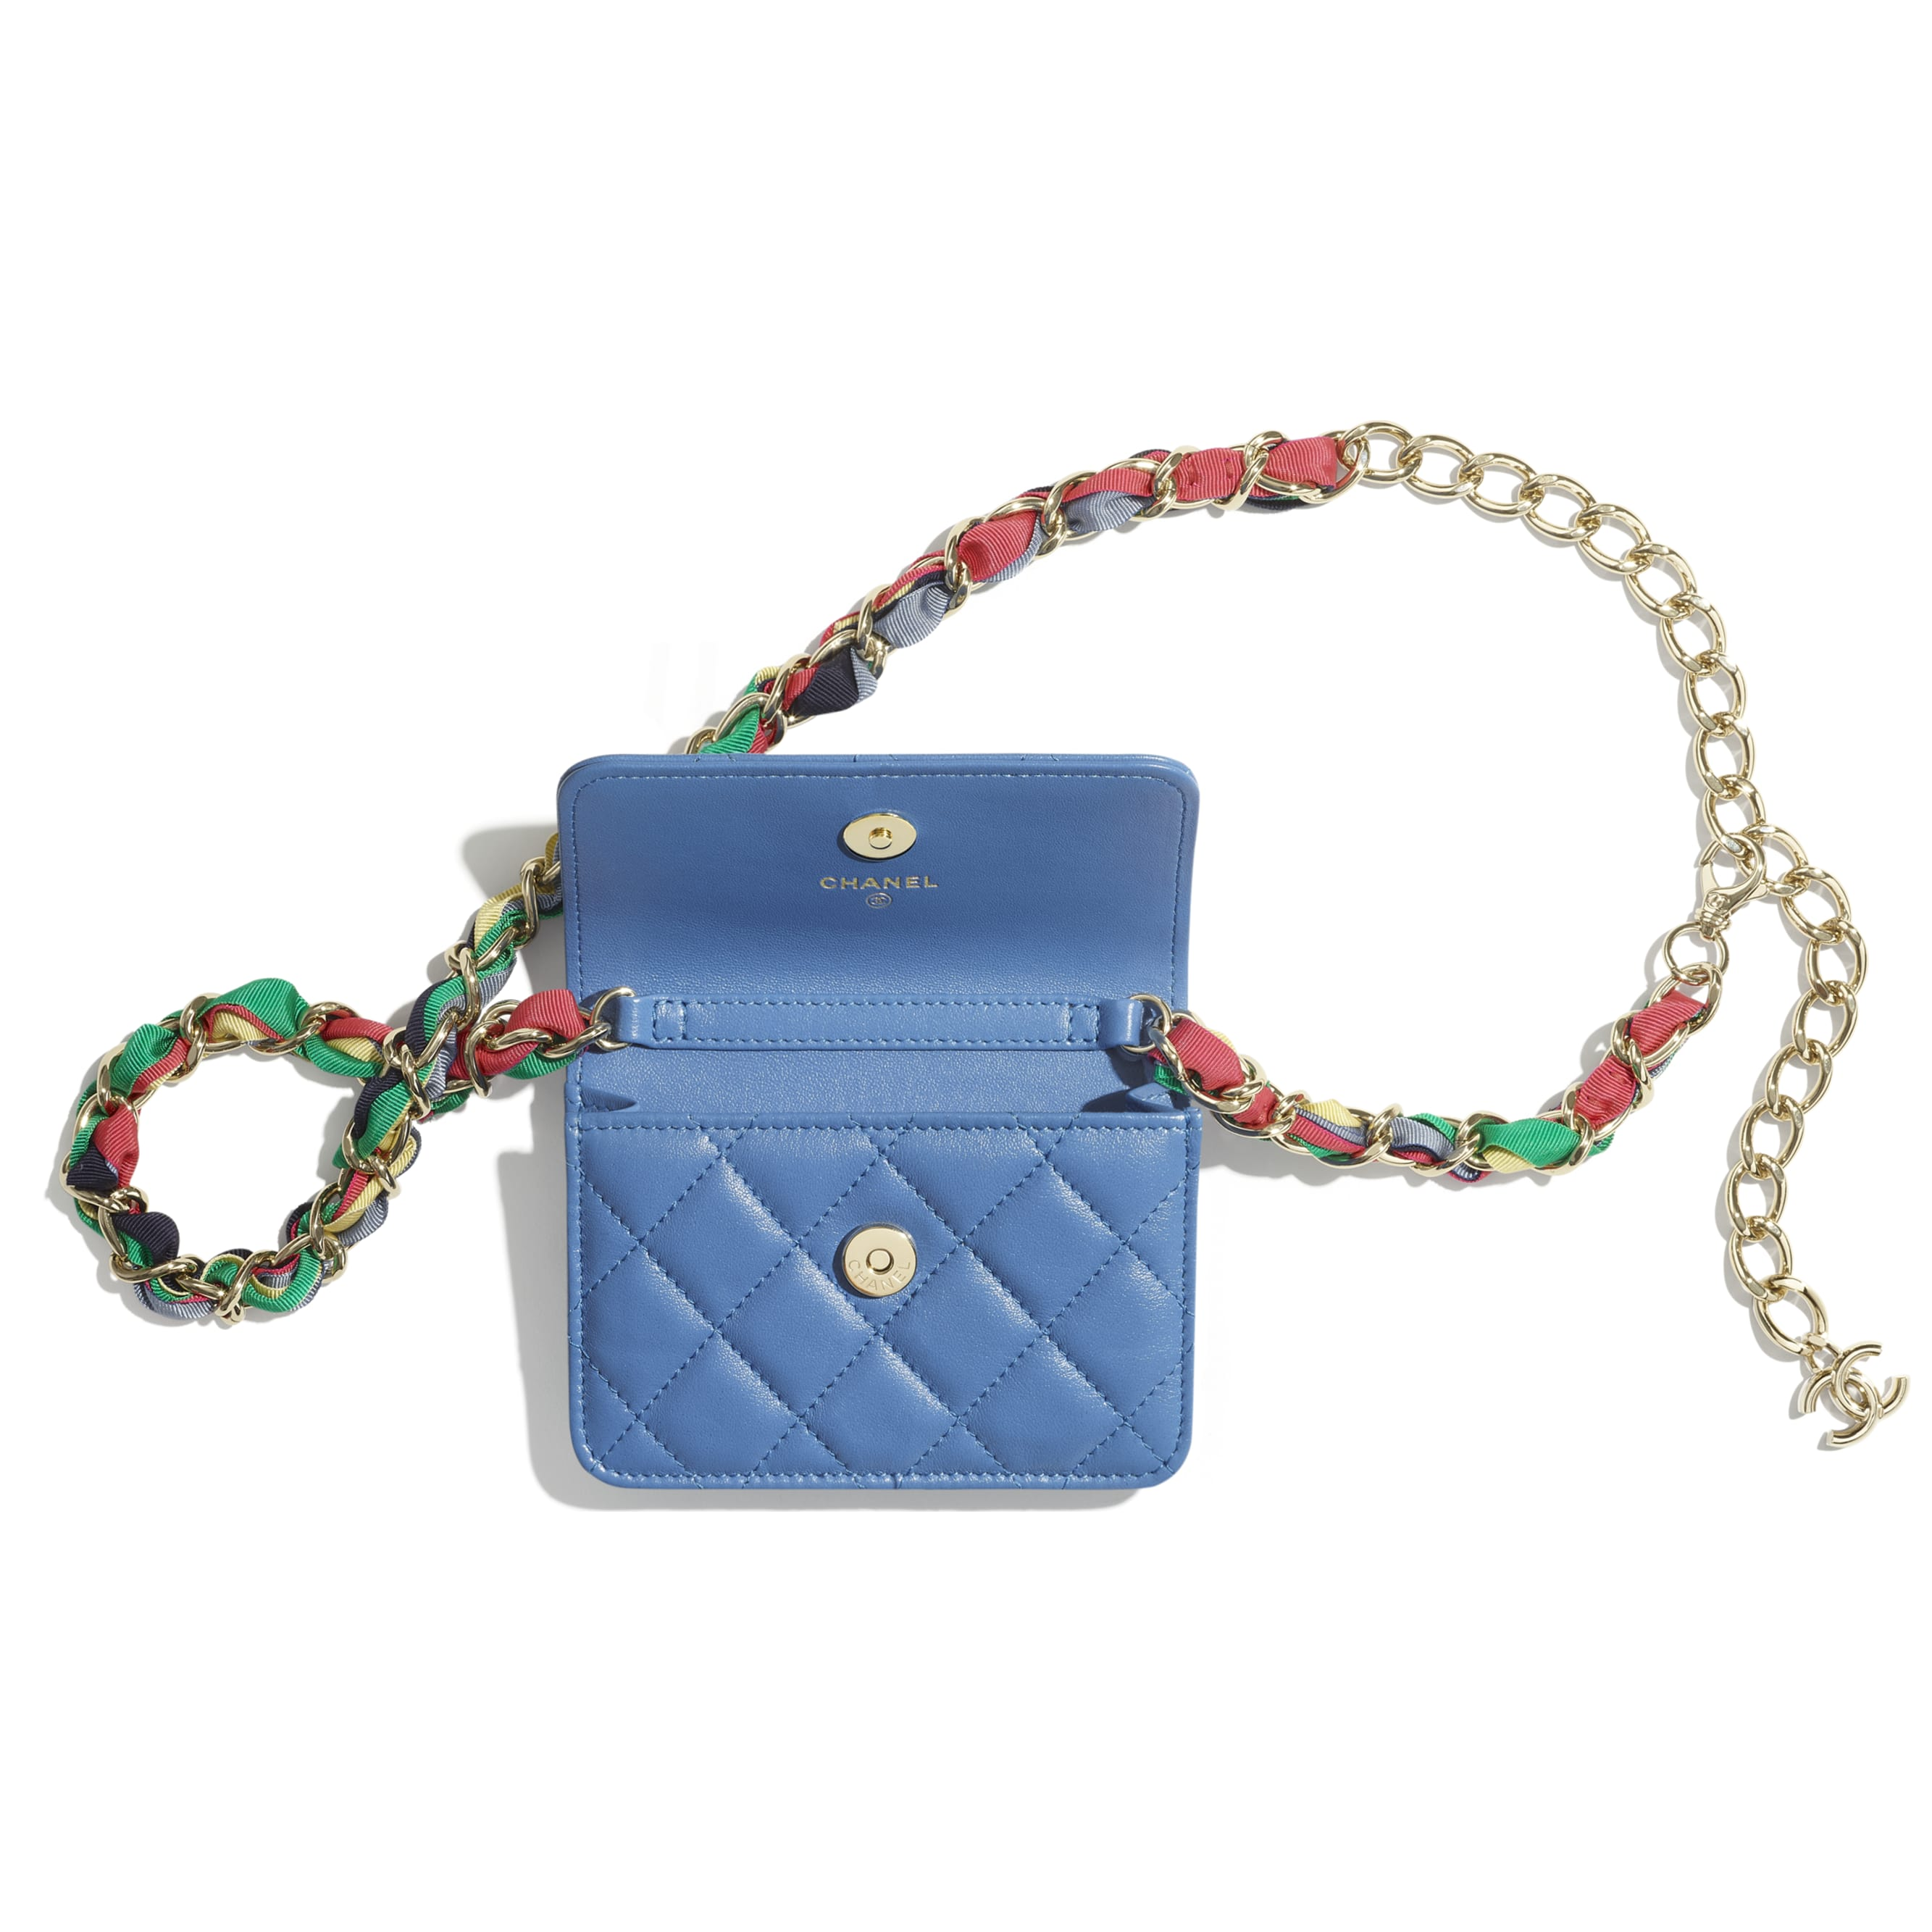 Belt Bag - Blue - Shiny Lambskin, Ribbon & Gold-Tone Metal - CHANEL - Alternative view - see standard sized version